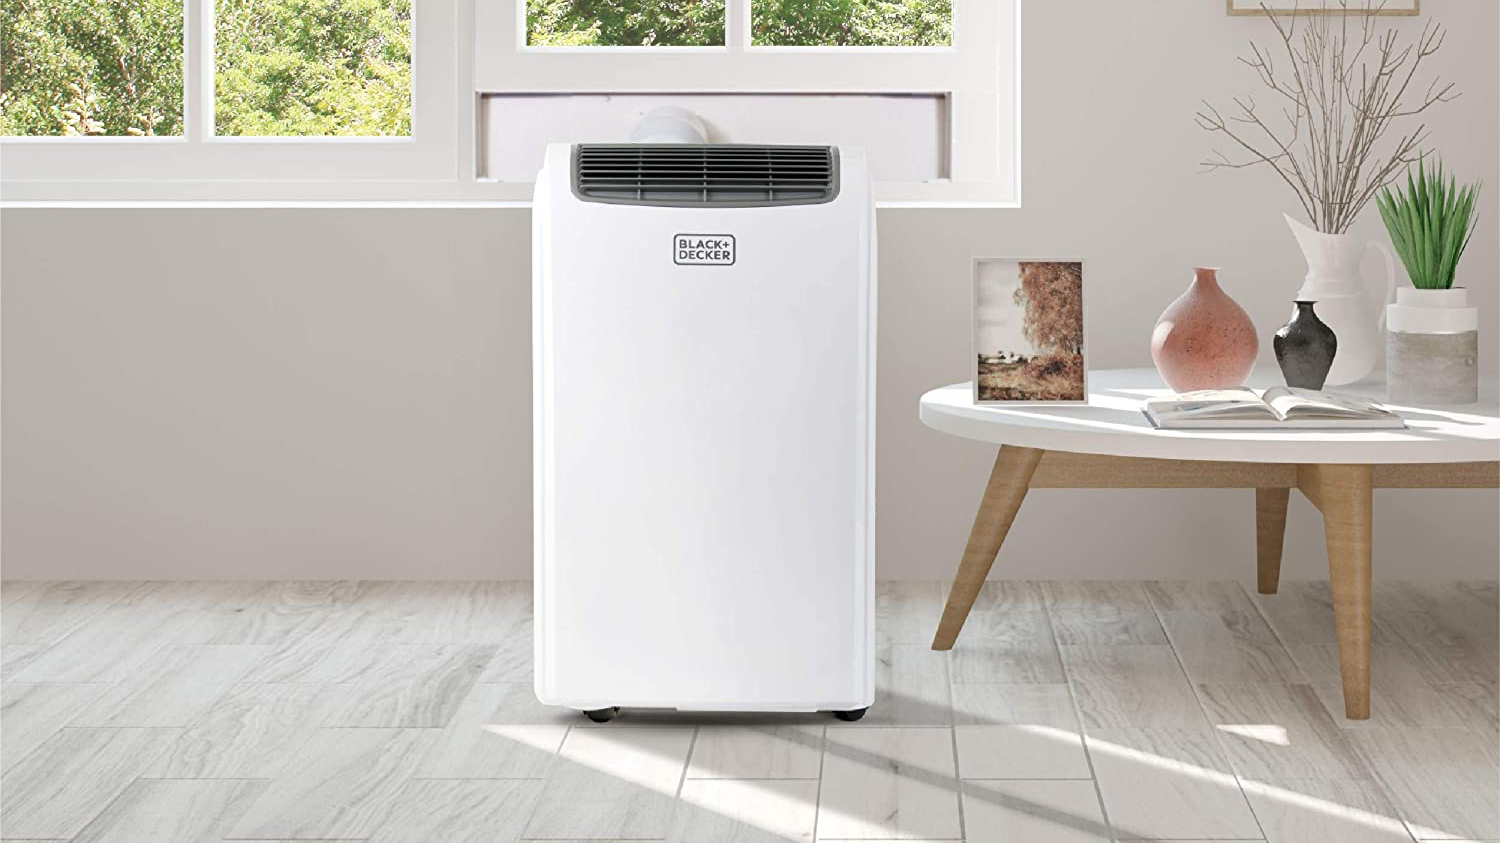 Black and decker portable air conditioner - review